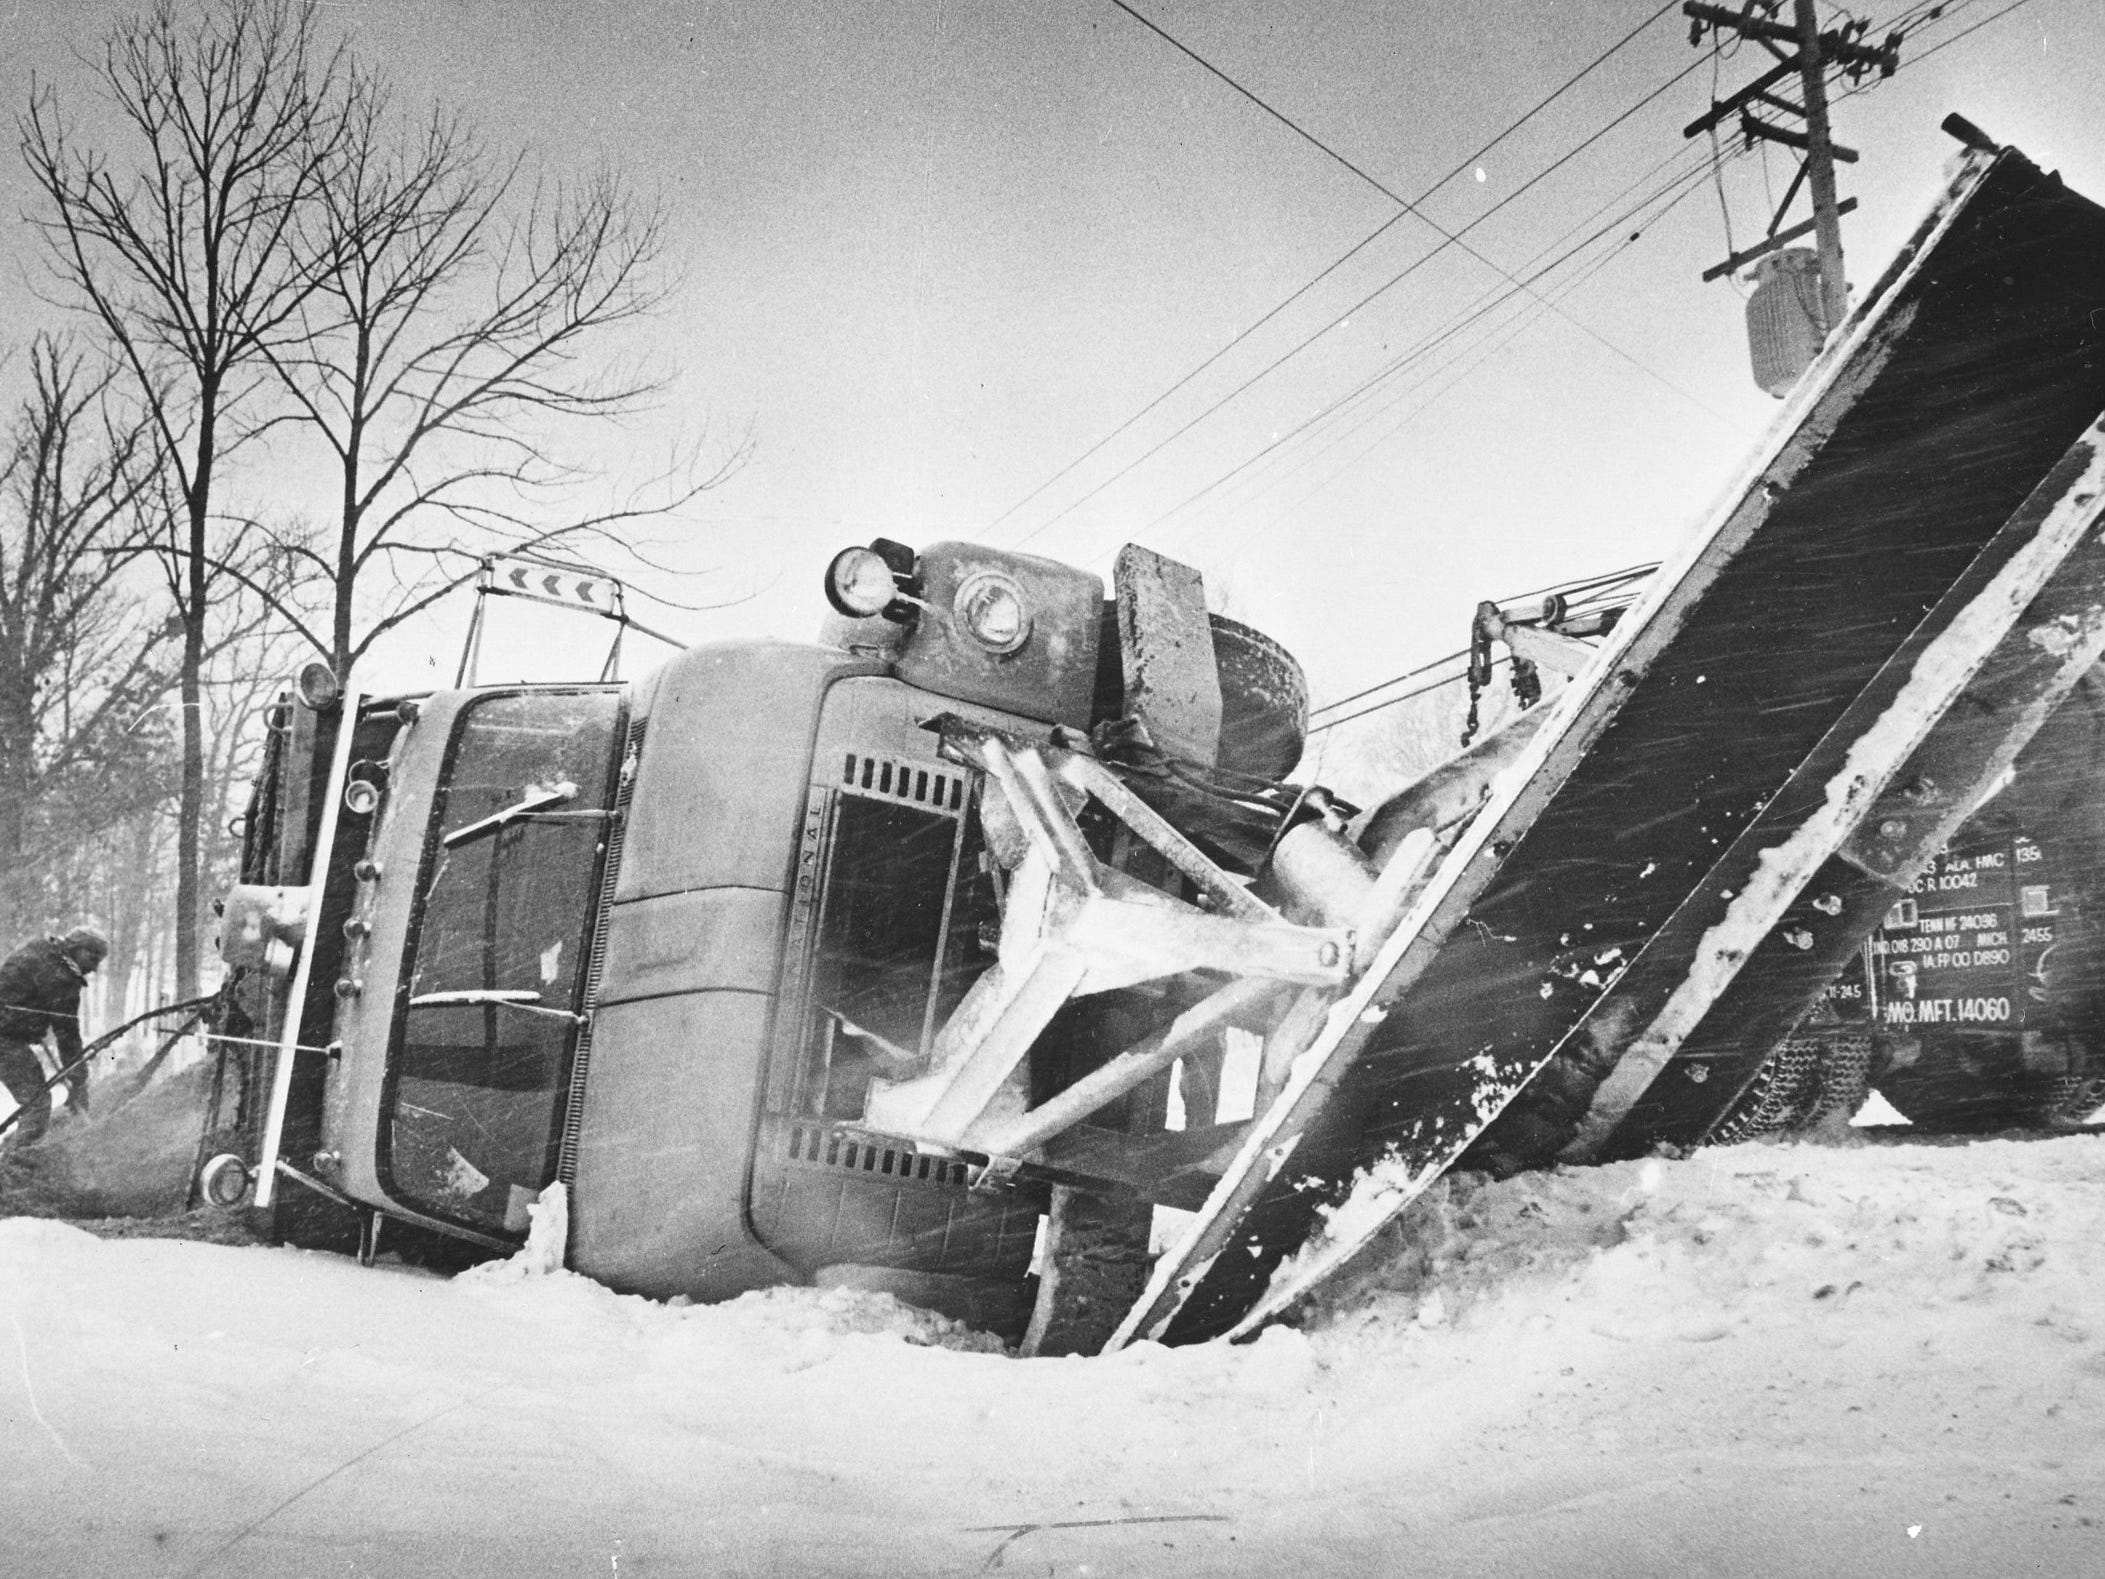 A City of Milwaukee snowplow careens into the ditch after being forced onto the shoulder of the 3400 block of W. College Ave. during plowing on Jan. 13, 1979. The plow and driver were both back on the road in a few hours, trying to deal with the city's second blizzard in two weeks. This photo was published in the Jan. 14, 1979, Milwaukee Journal.